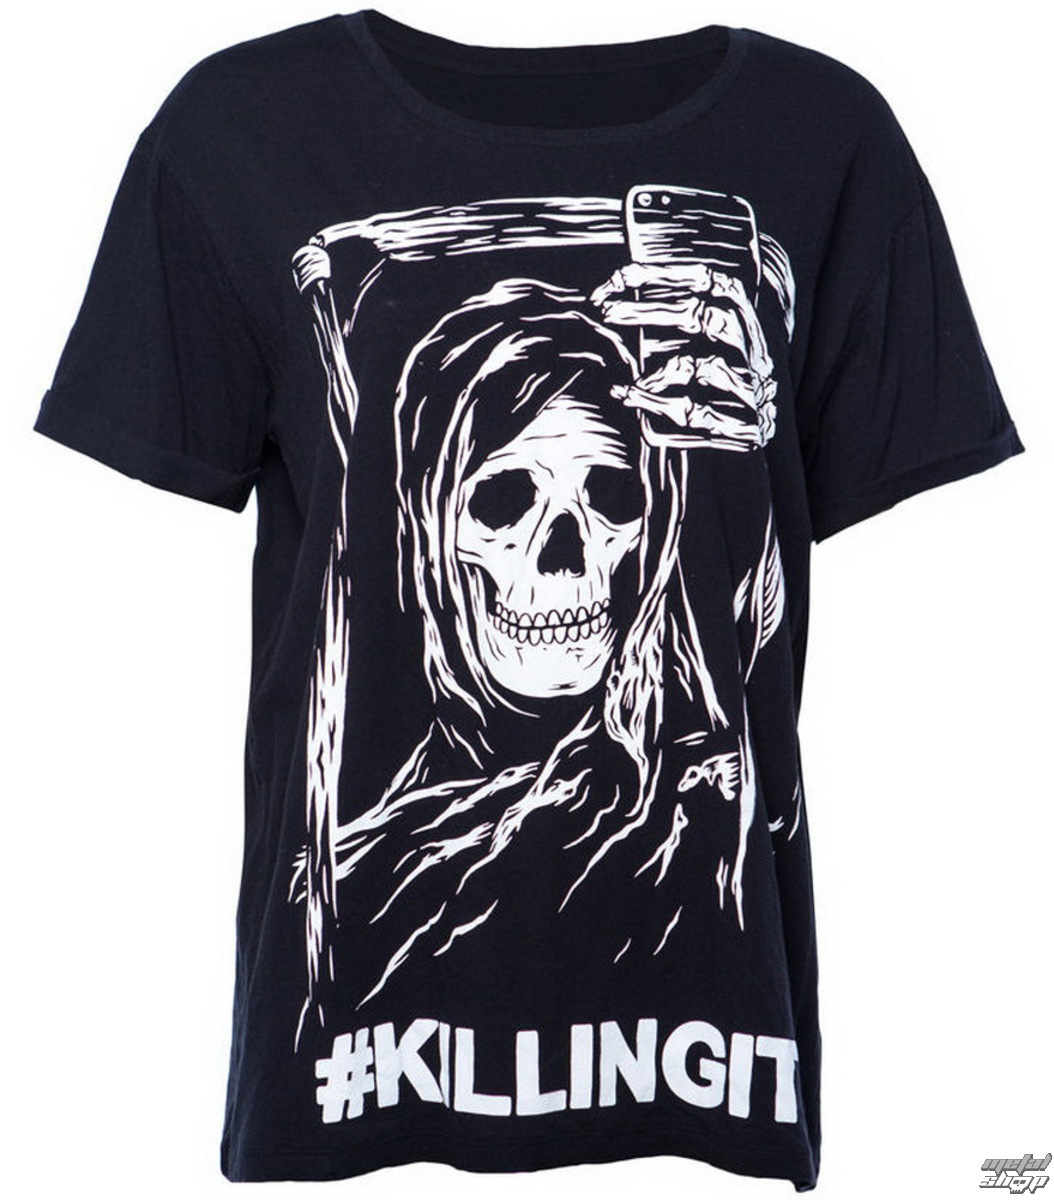 tričko pánske IRON FIST- Killing It Boyfriend - Black - IF003651